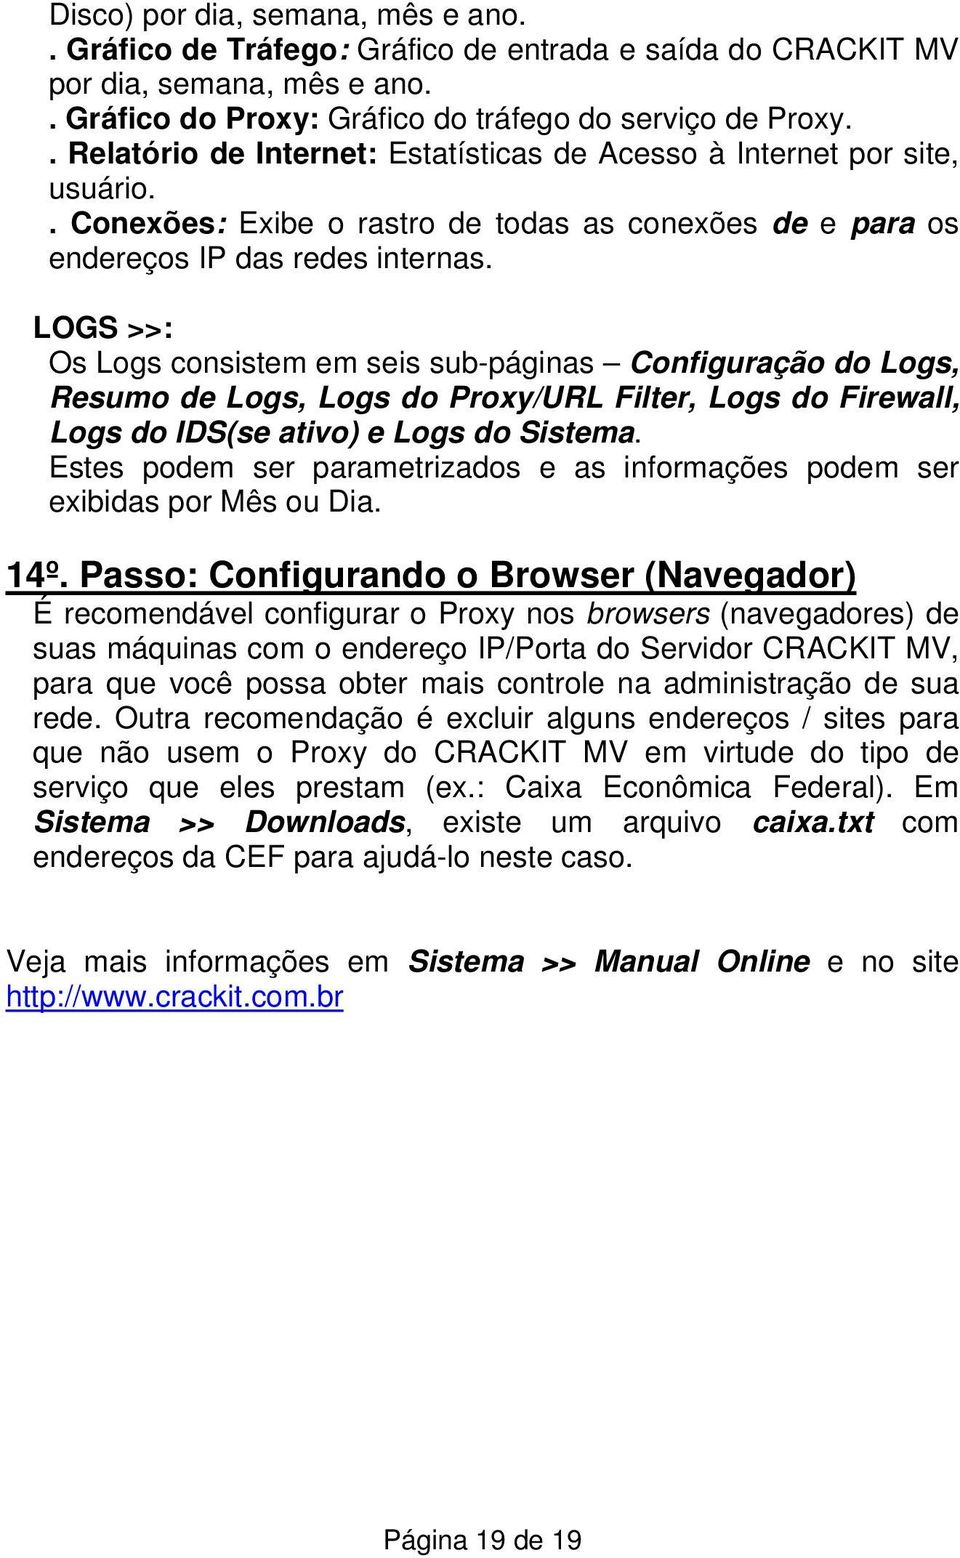 LOGS >>: Os Logs consistem em seis sub-páginas Configuração do Logs, Resumo de Logs, Logs do Proxy/URL Filter, Logs do Firewall, Logs do IDS(se ativo) e Logs do Sistema.